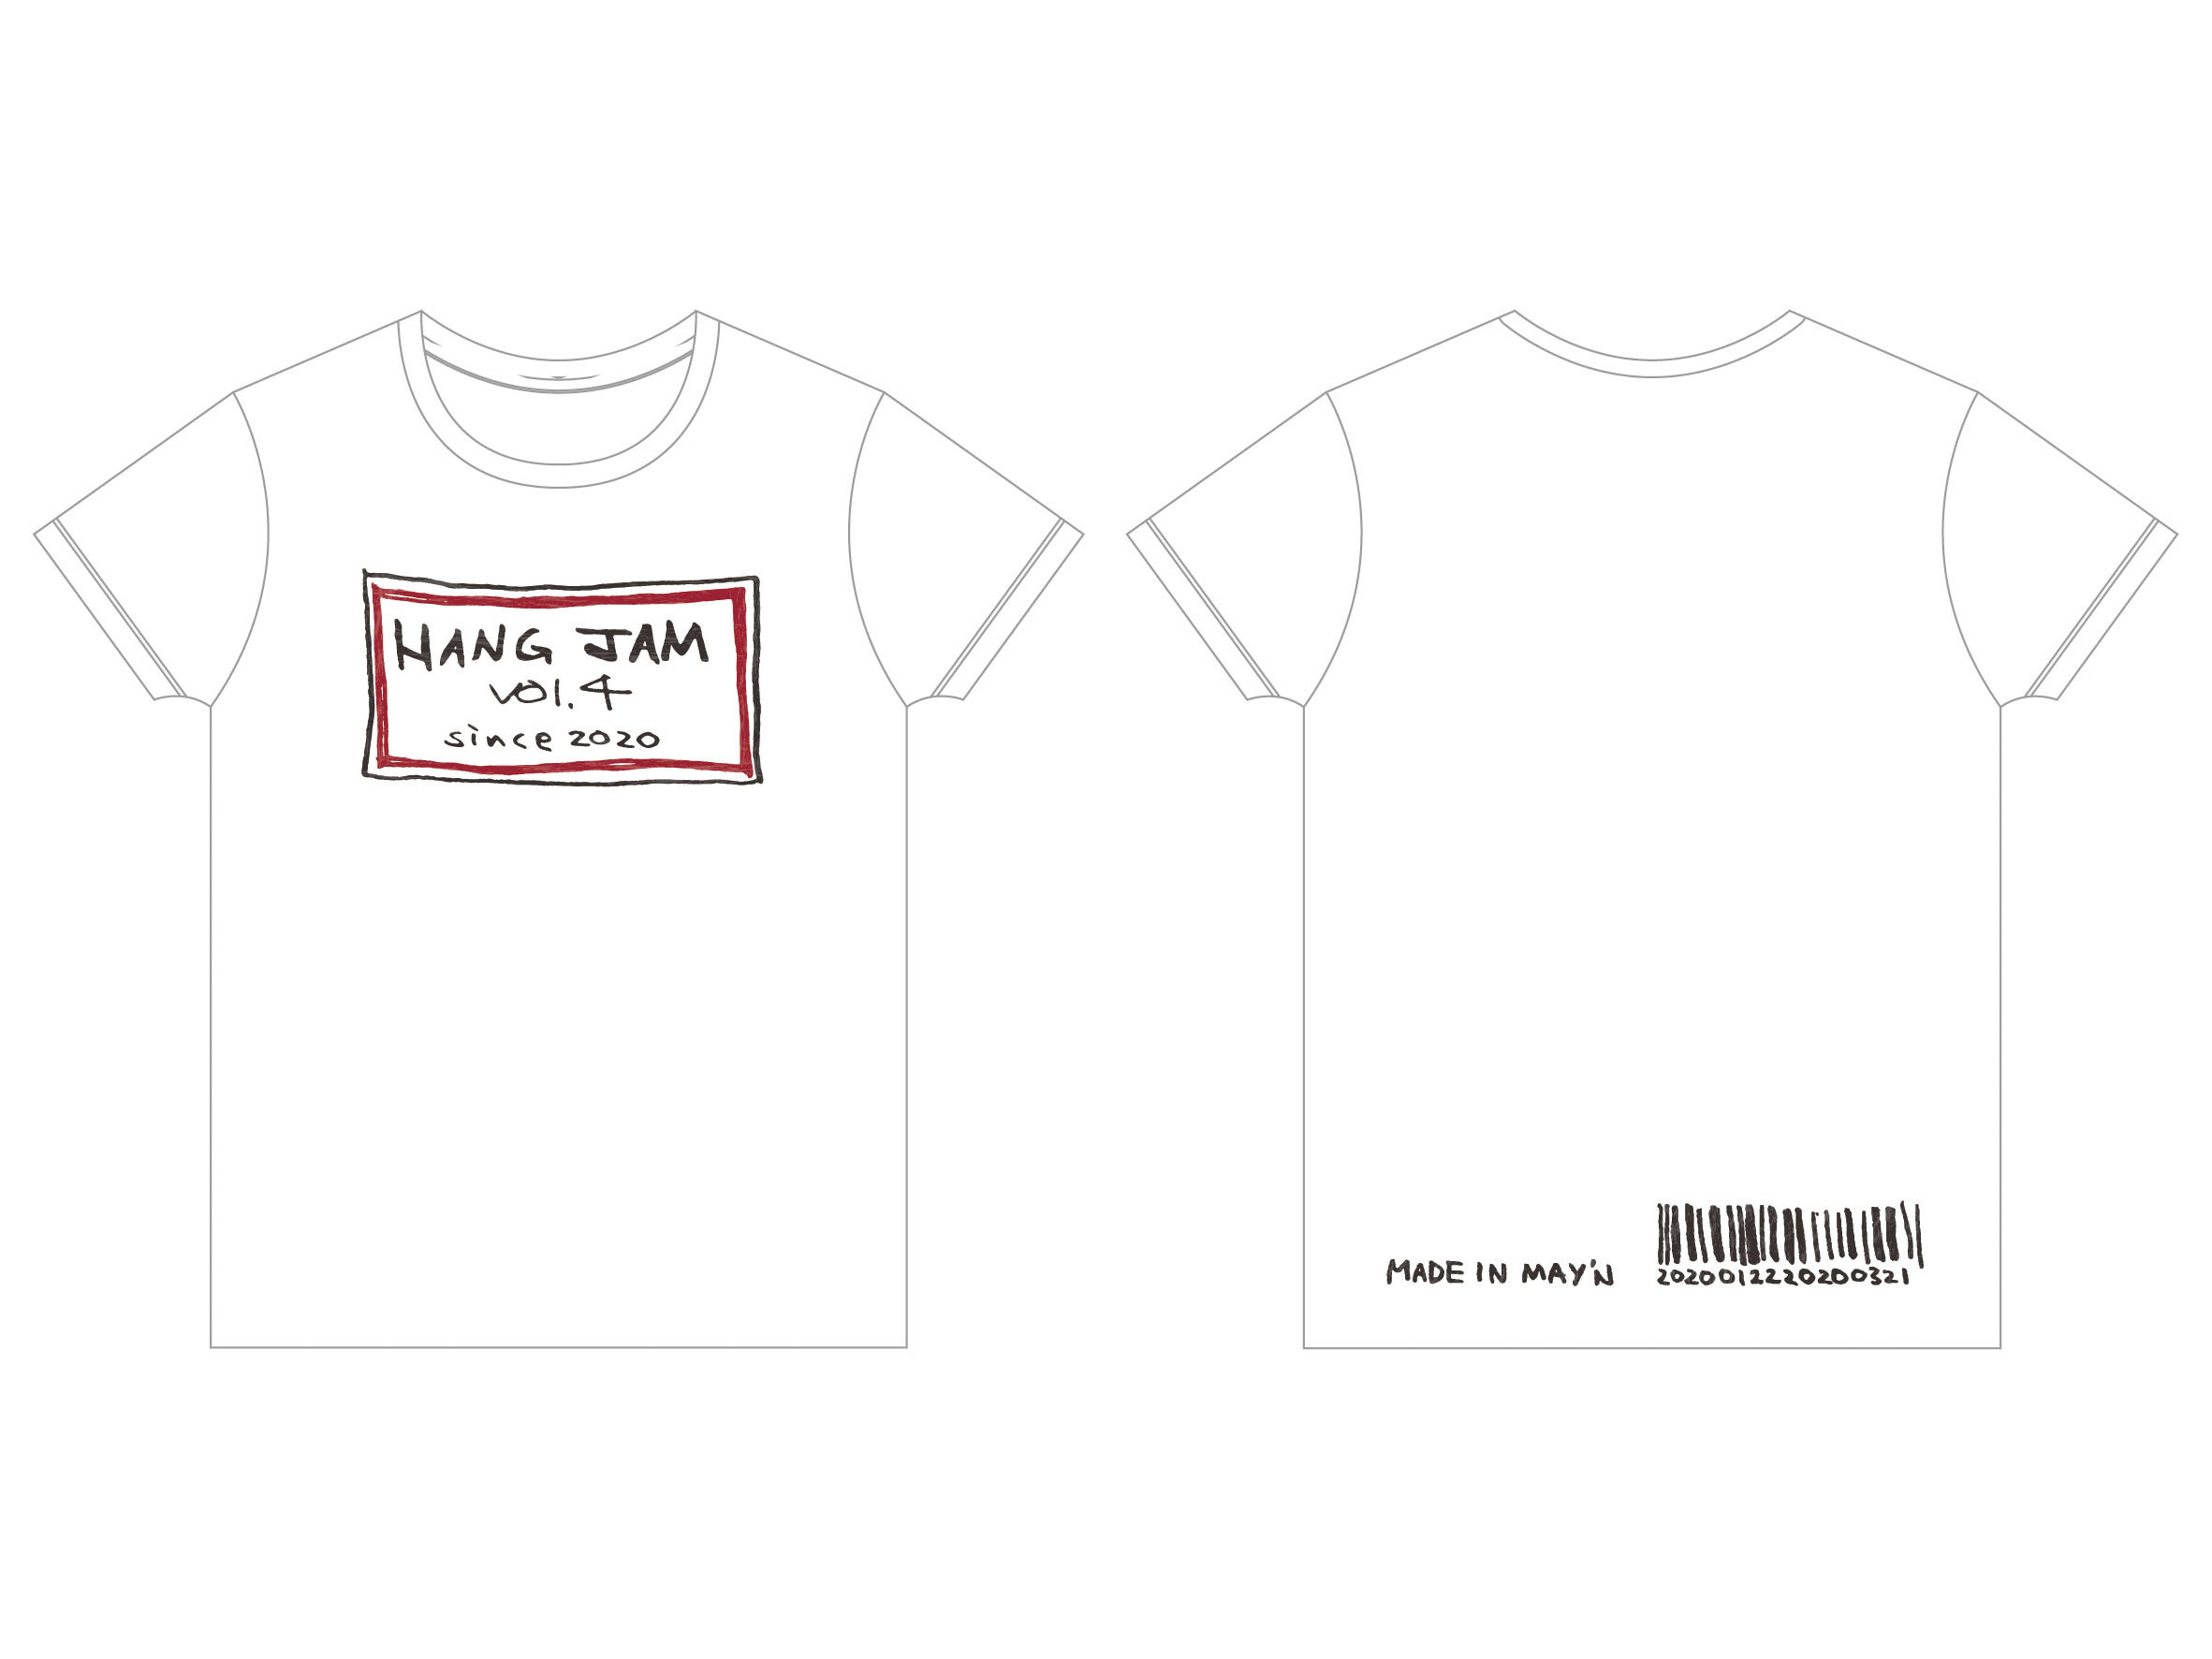 「Hang jam vol.4」 Tシャツ(ホワイト Made in May'n ver.)